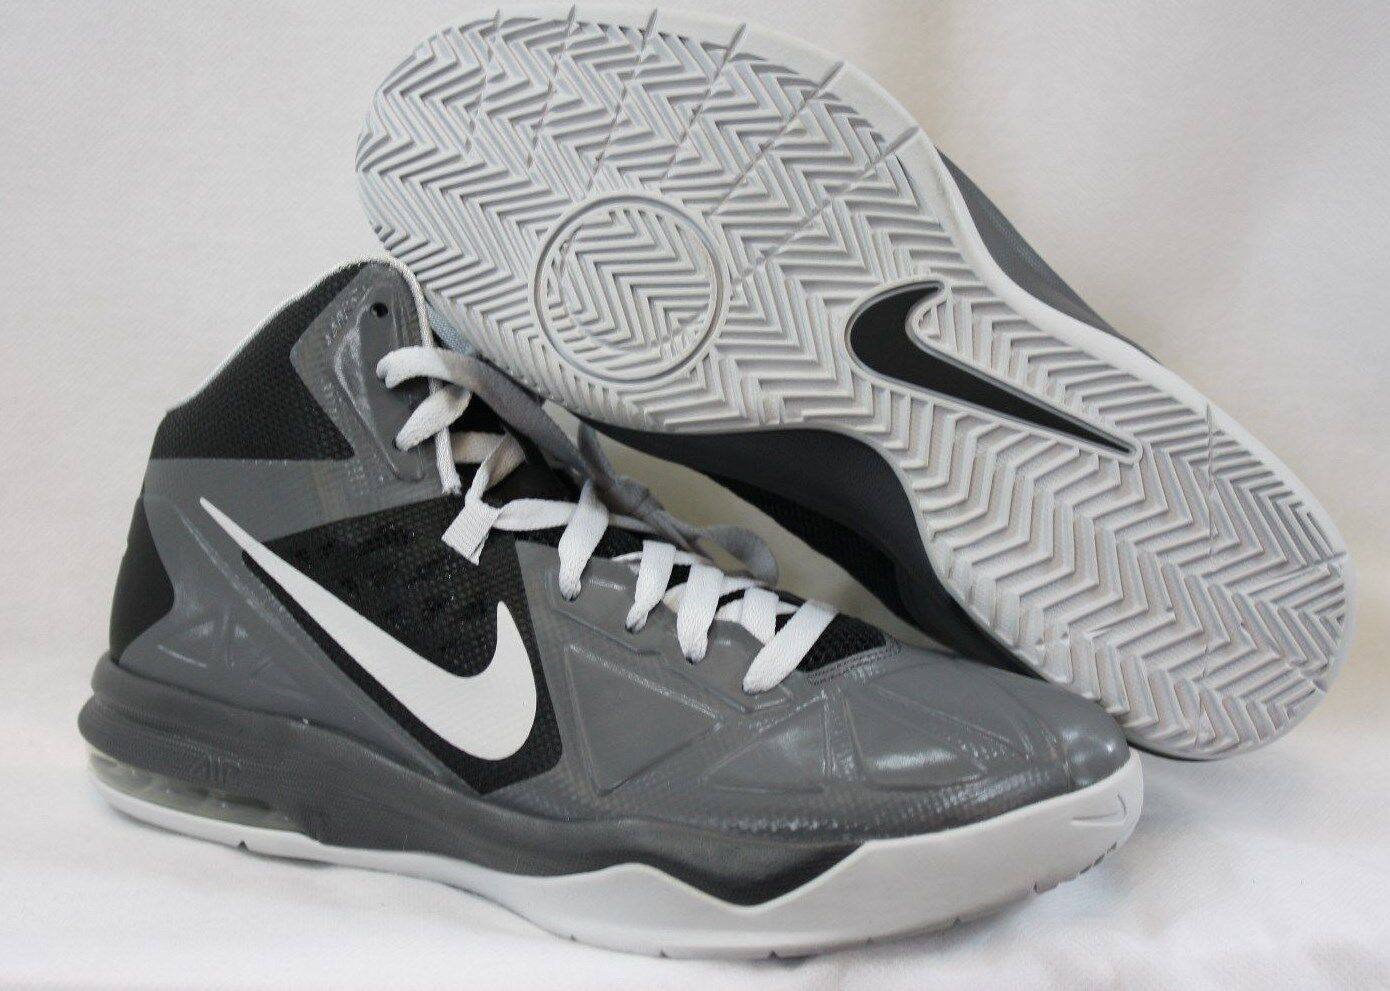 NEW Mens Sz 7 NIKE Air Max Body U 599350 001 Grey Black Sneakers Shoes